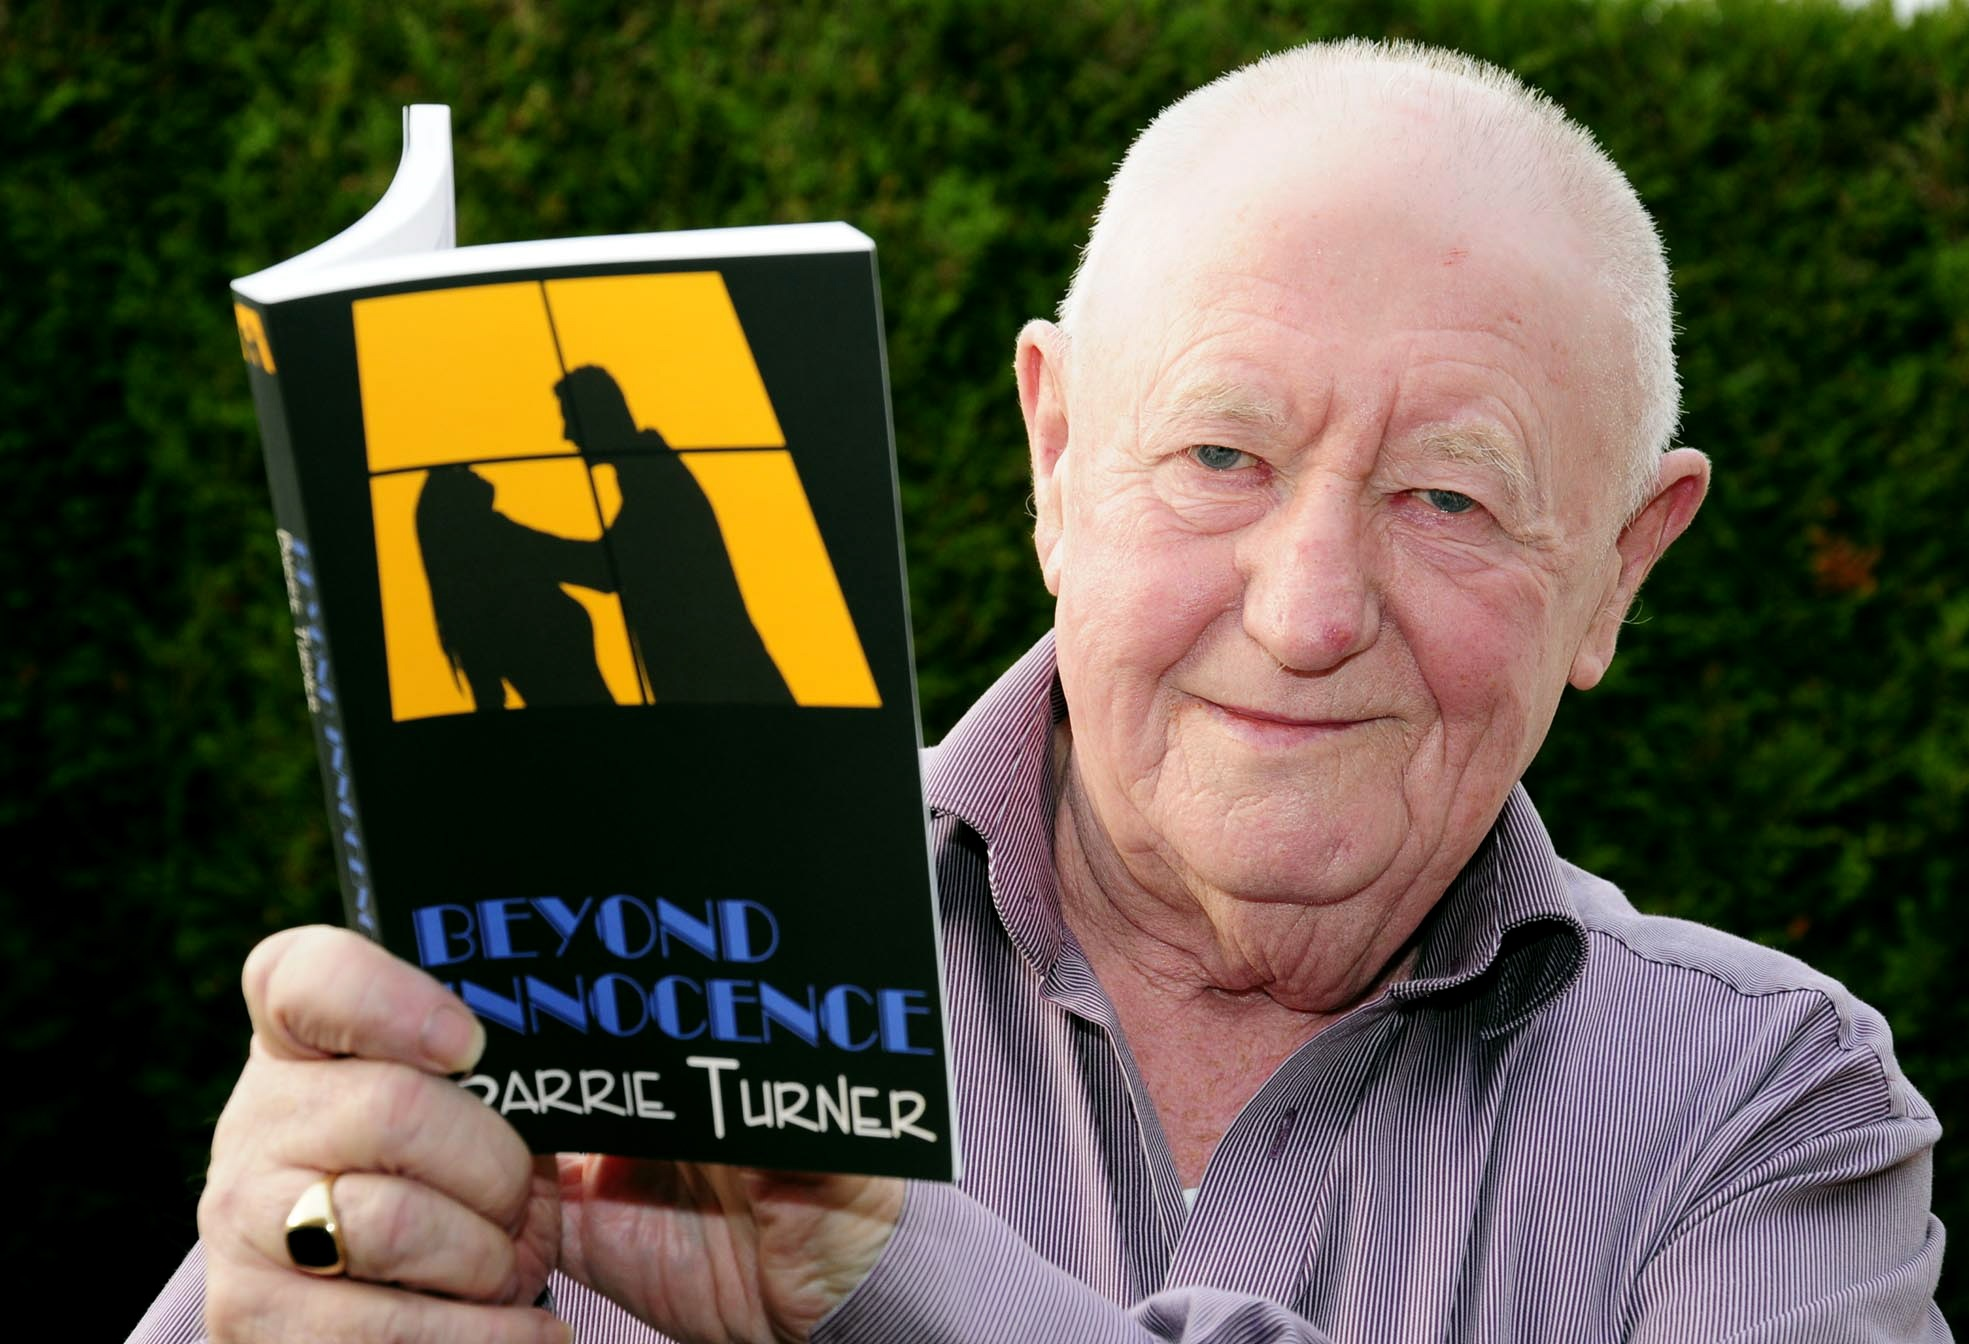 Barrie Turner with his first novel, Beyond Innocence - 2793308